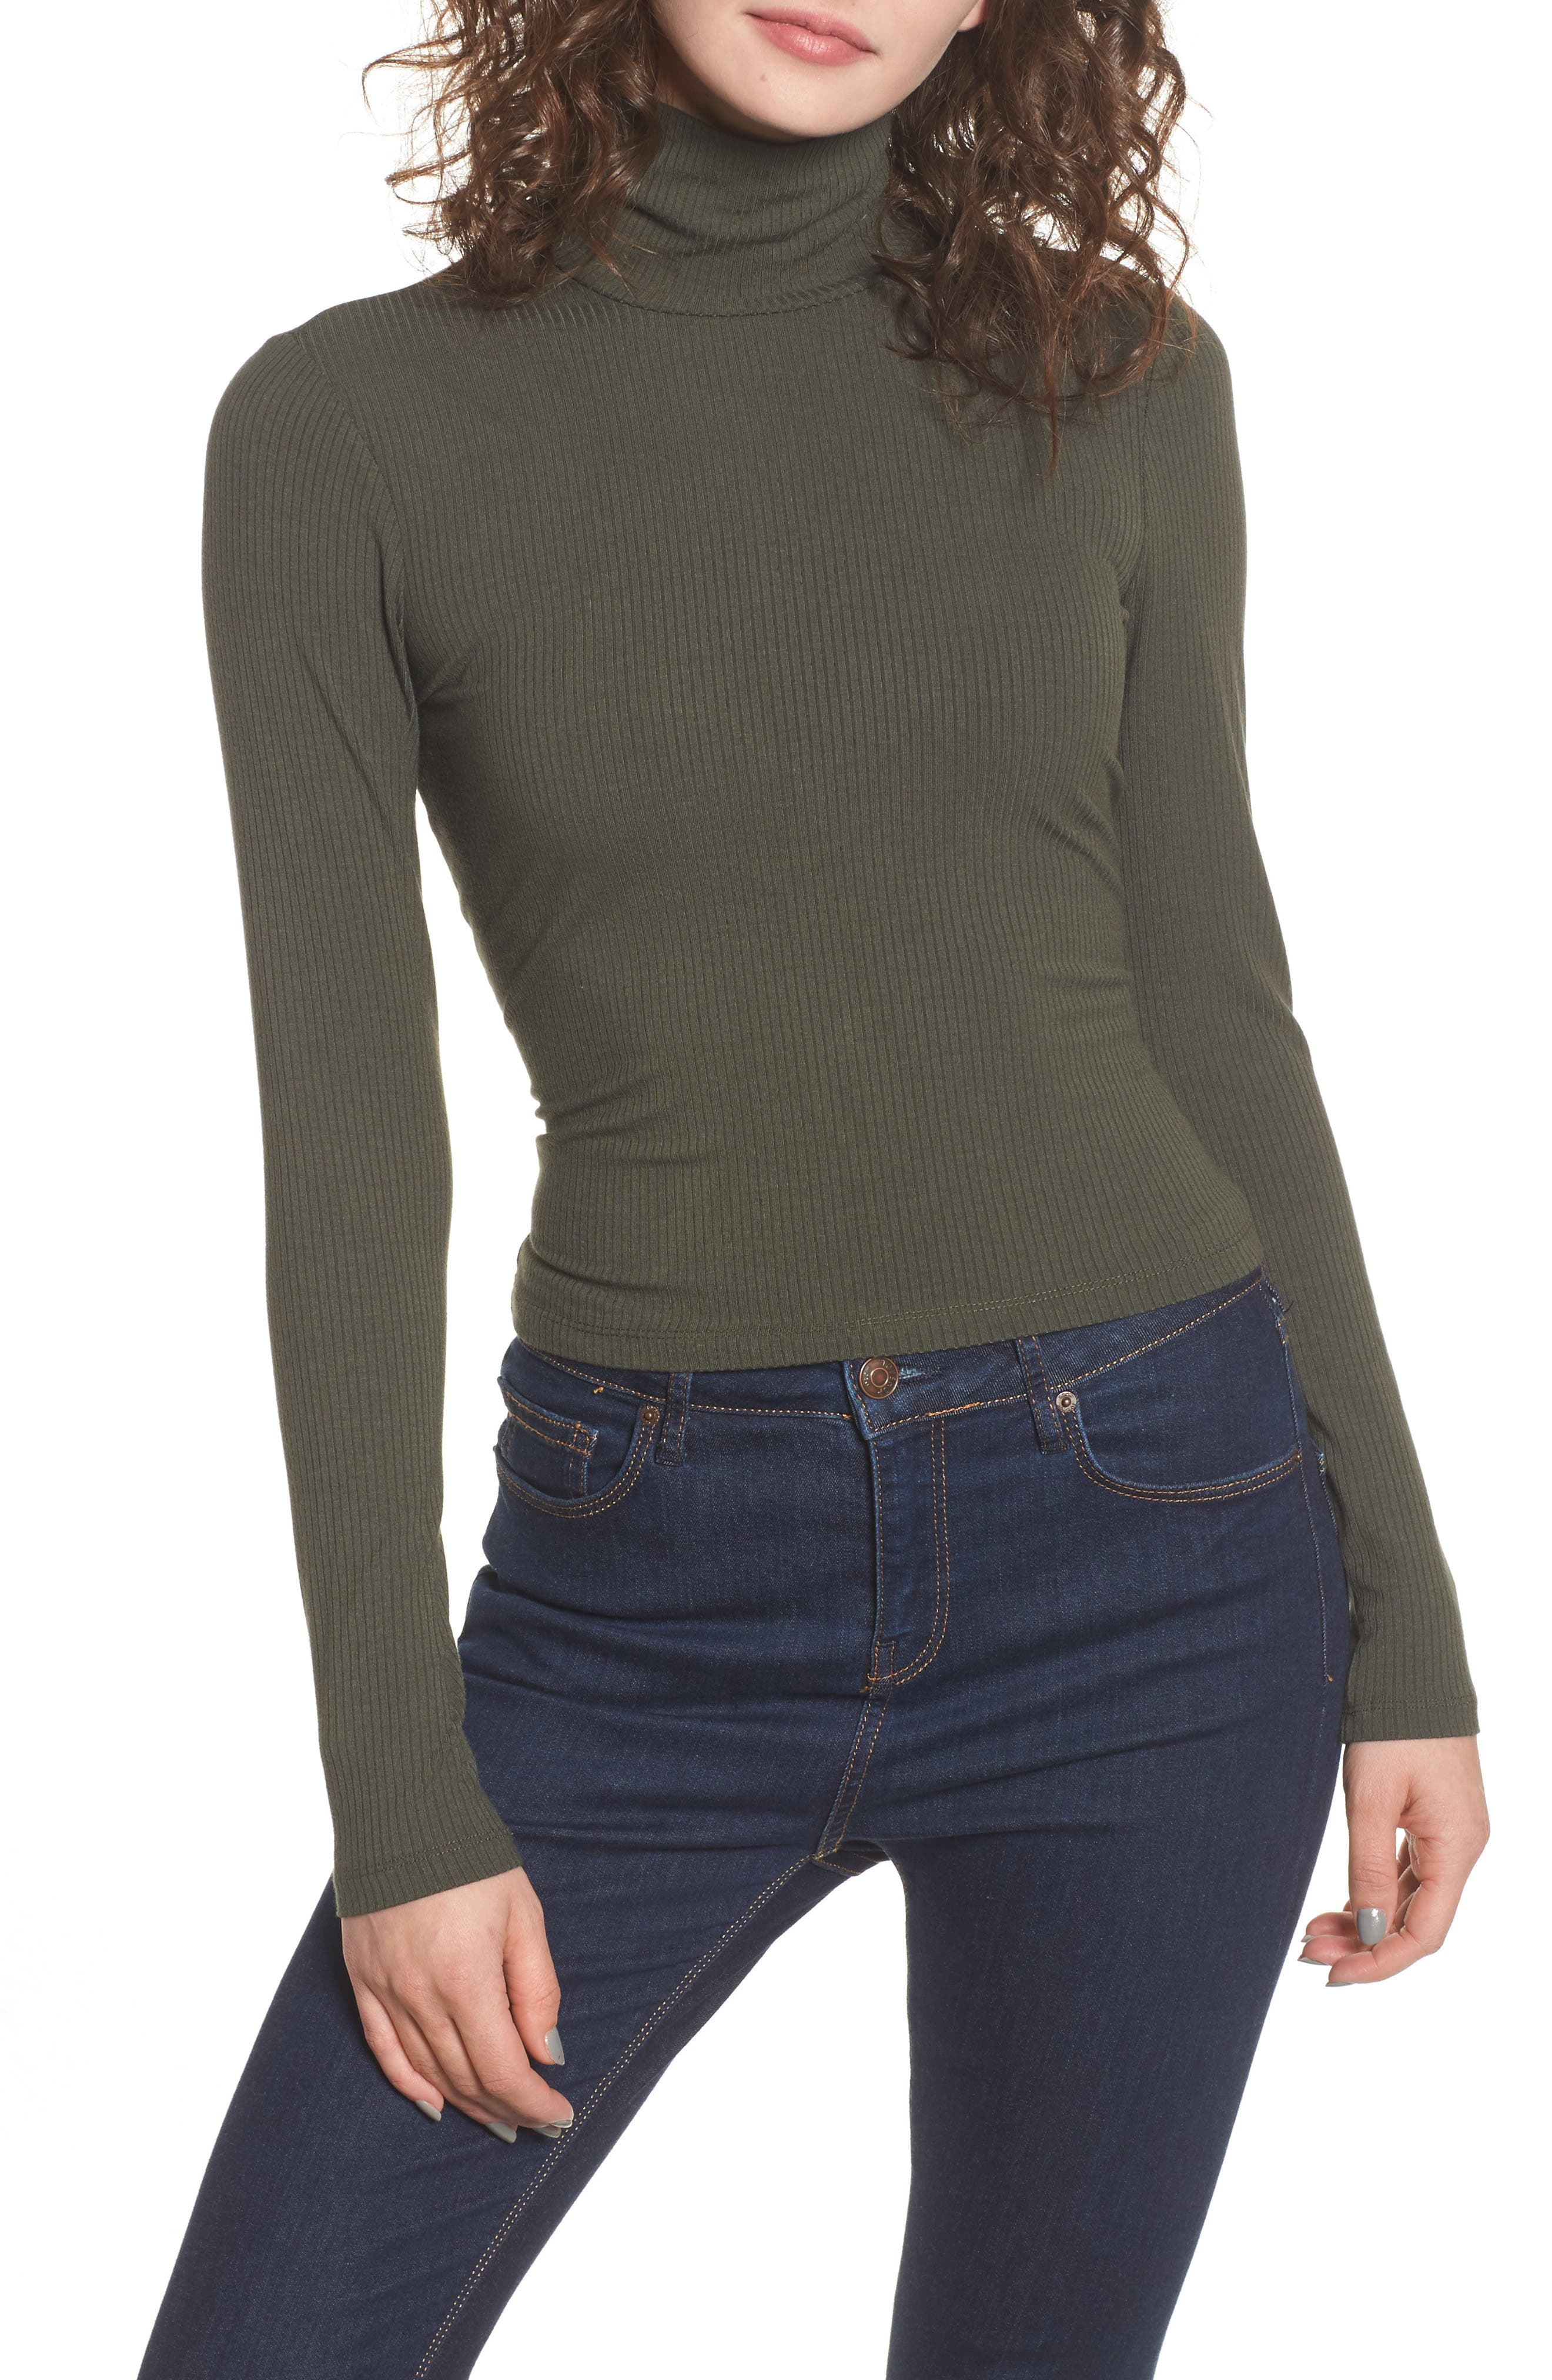 Mira Lace Up Turtleneck,                             Main thumbnail 1, color,                             Olive